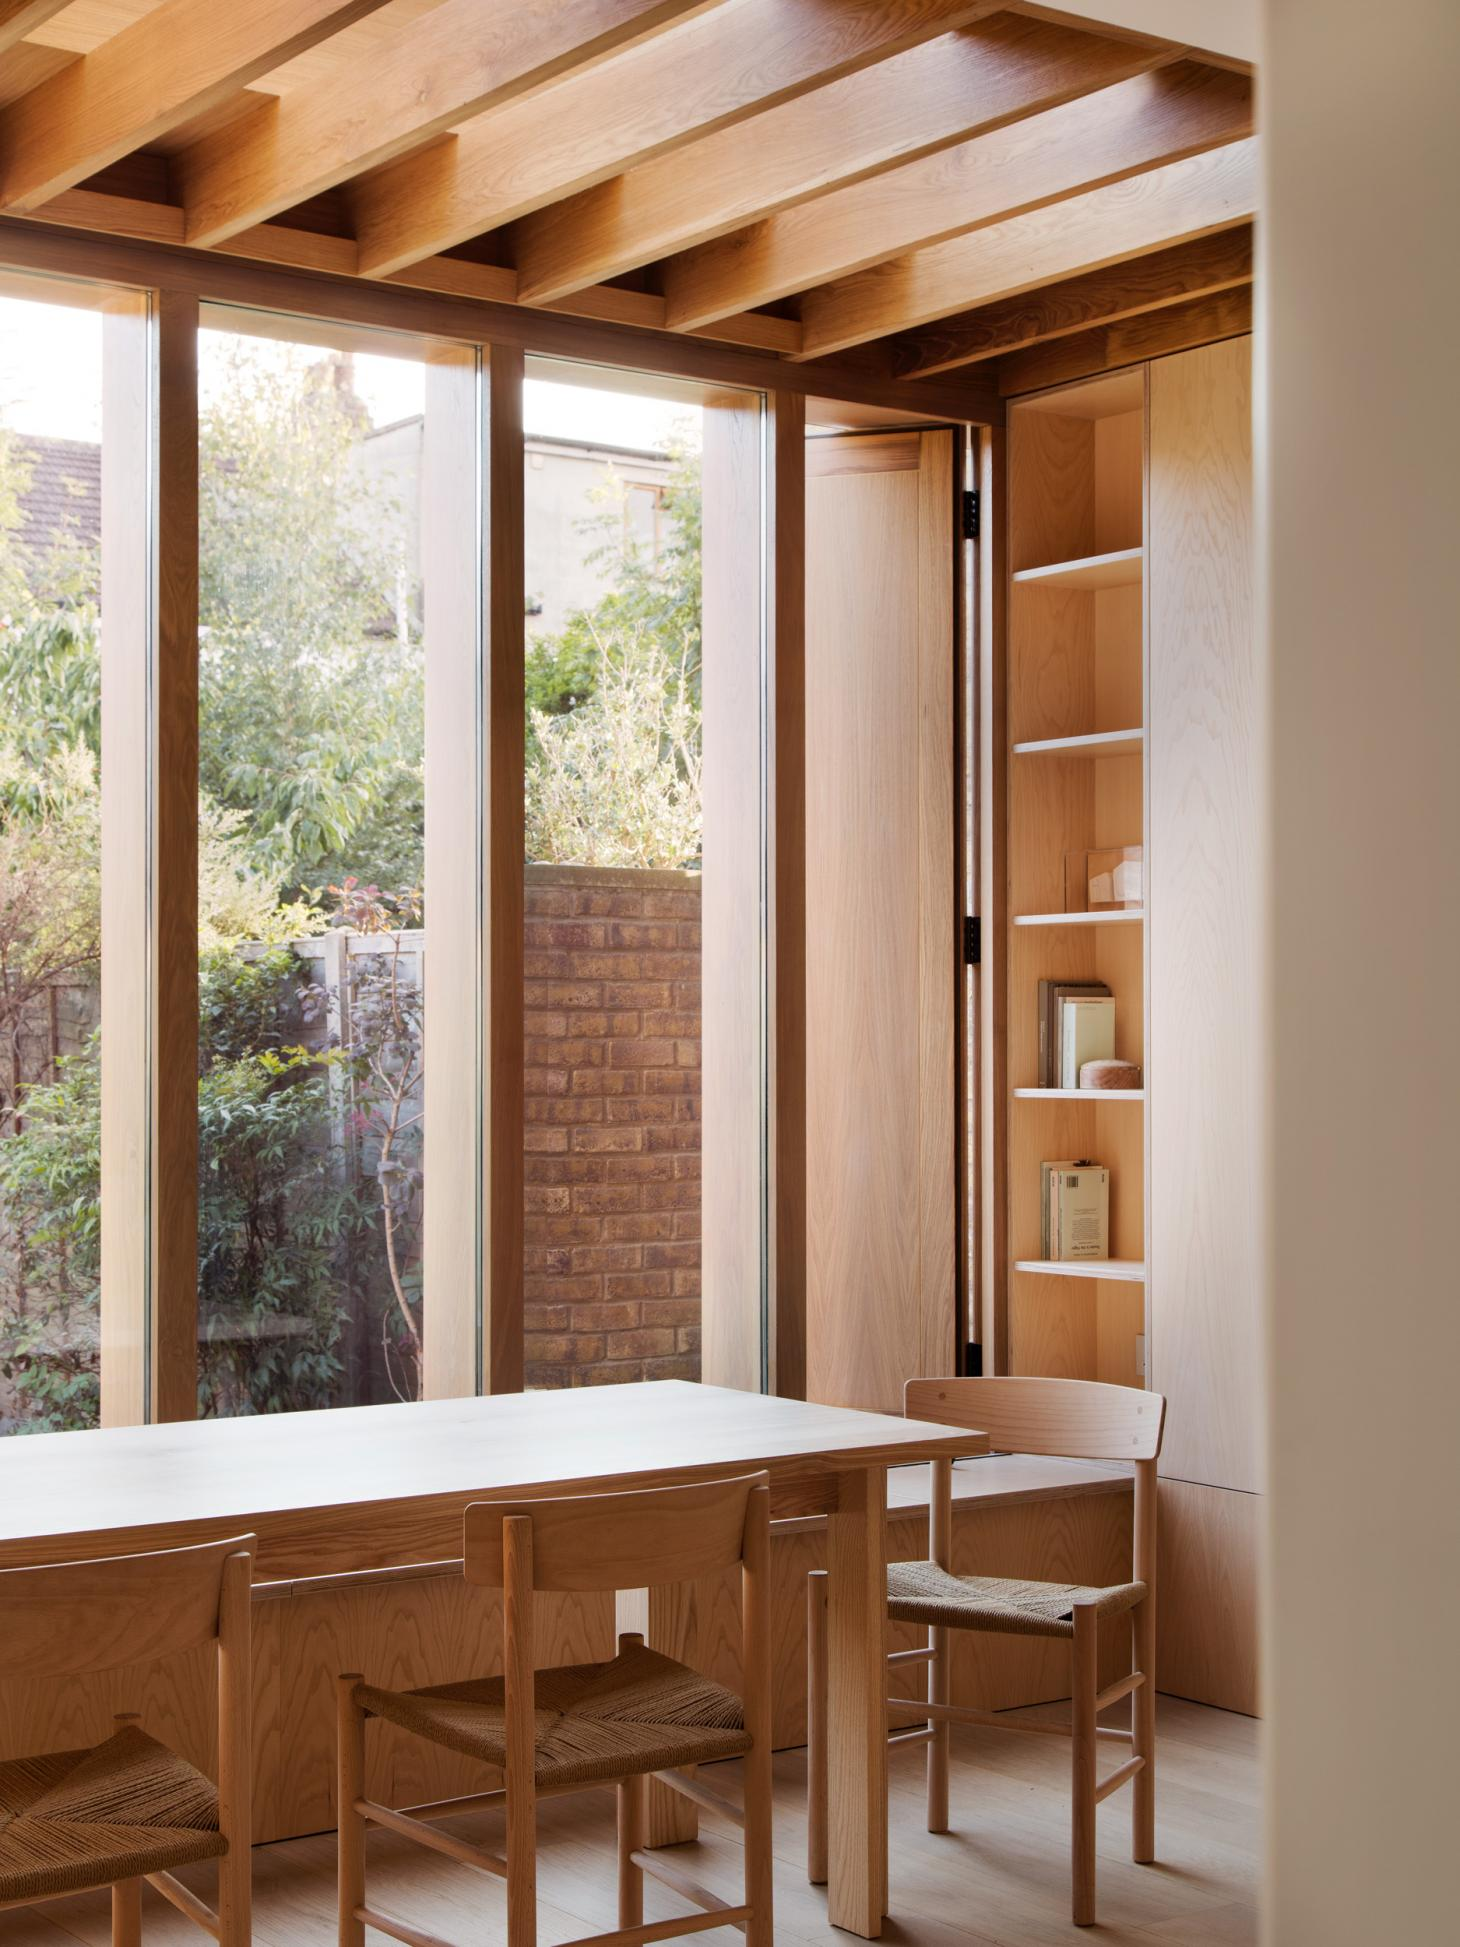 dining area within all timber interior in London's Dewsbury road